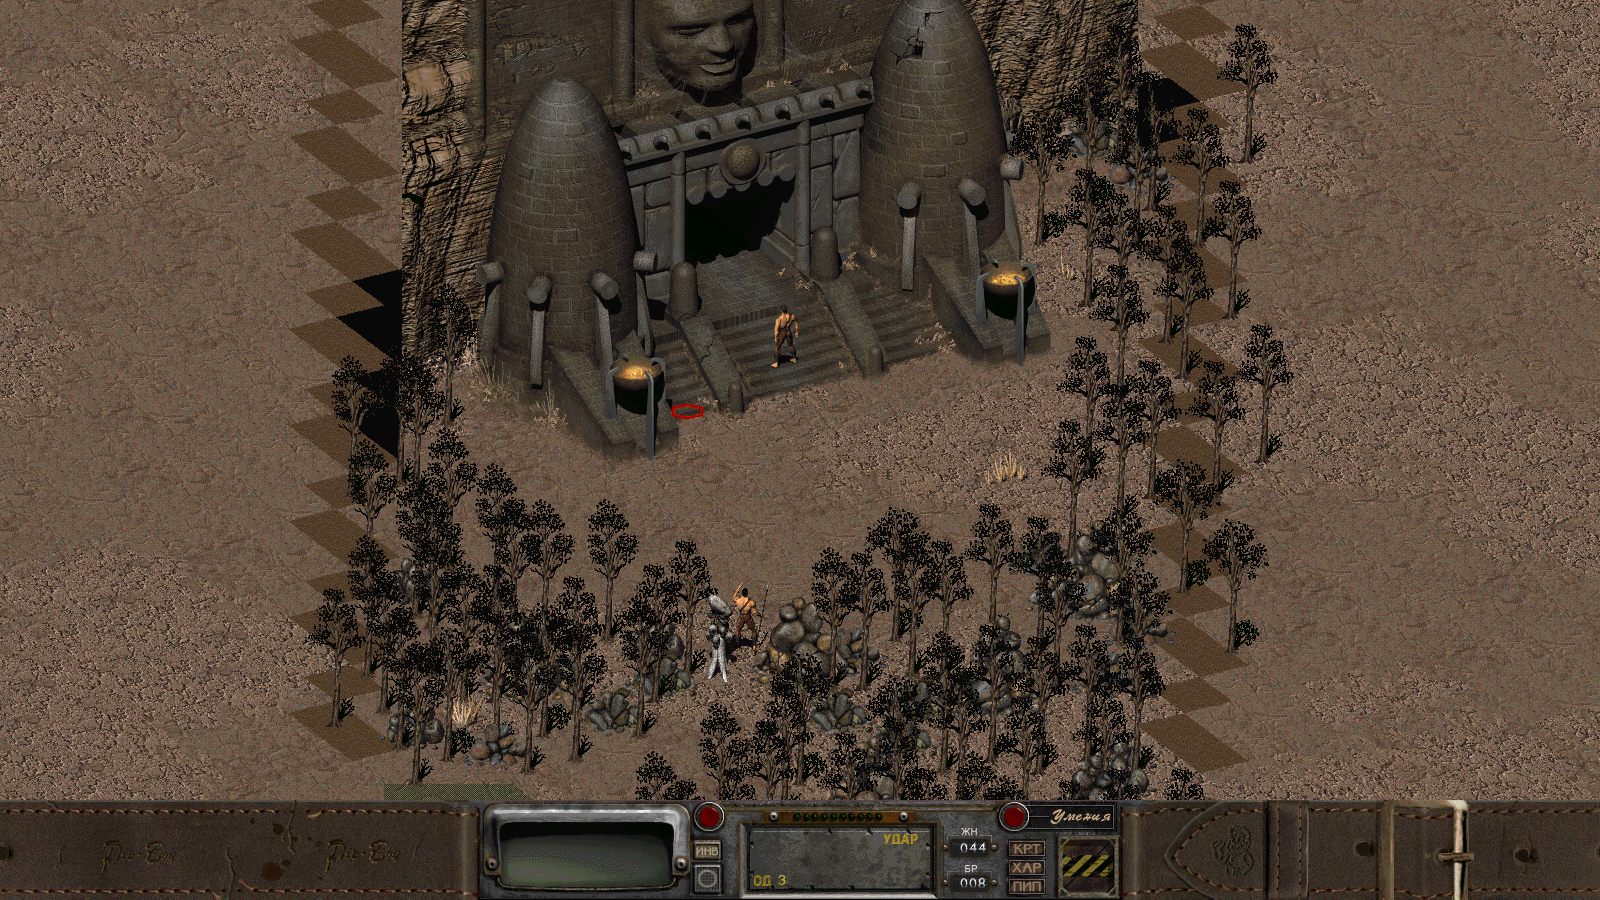 A new major version of the Fallout 2 high resolution patch has